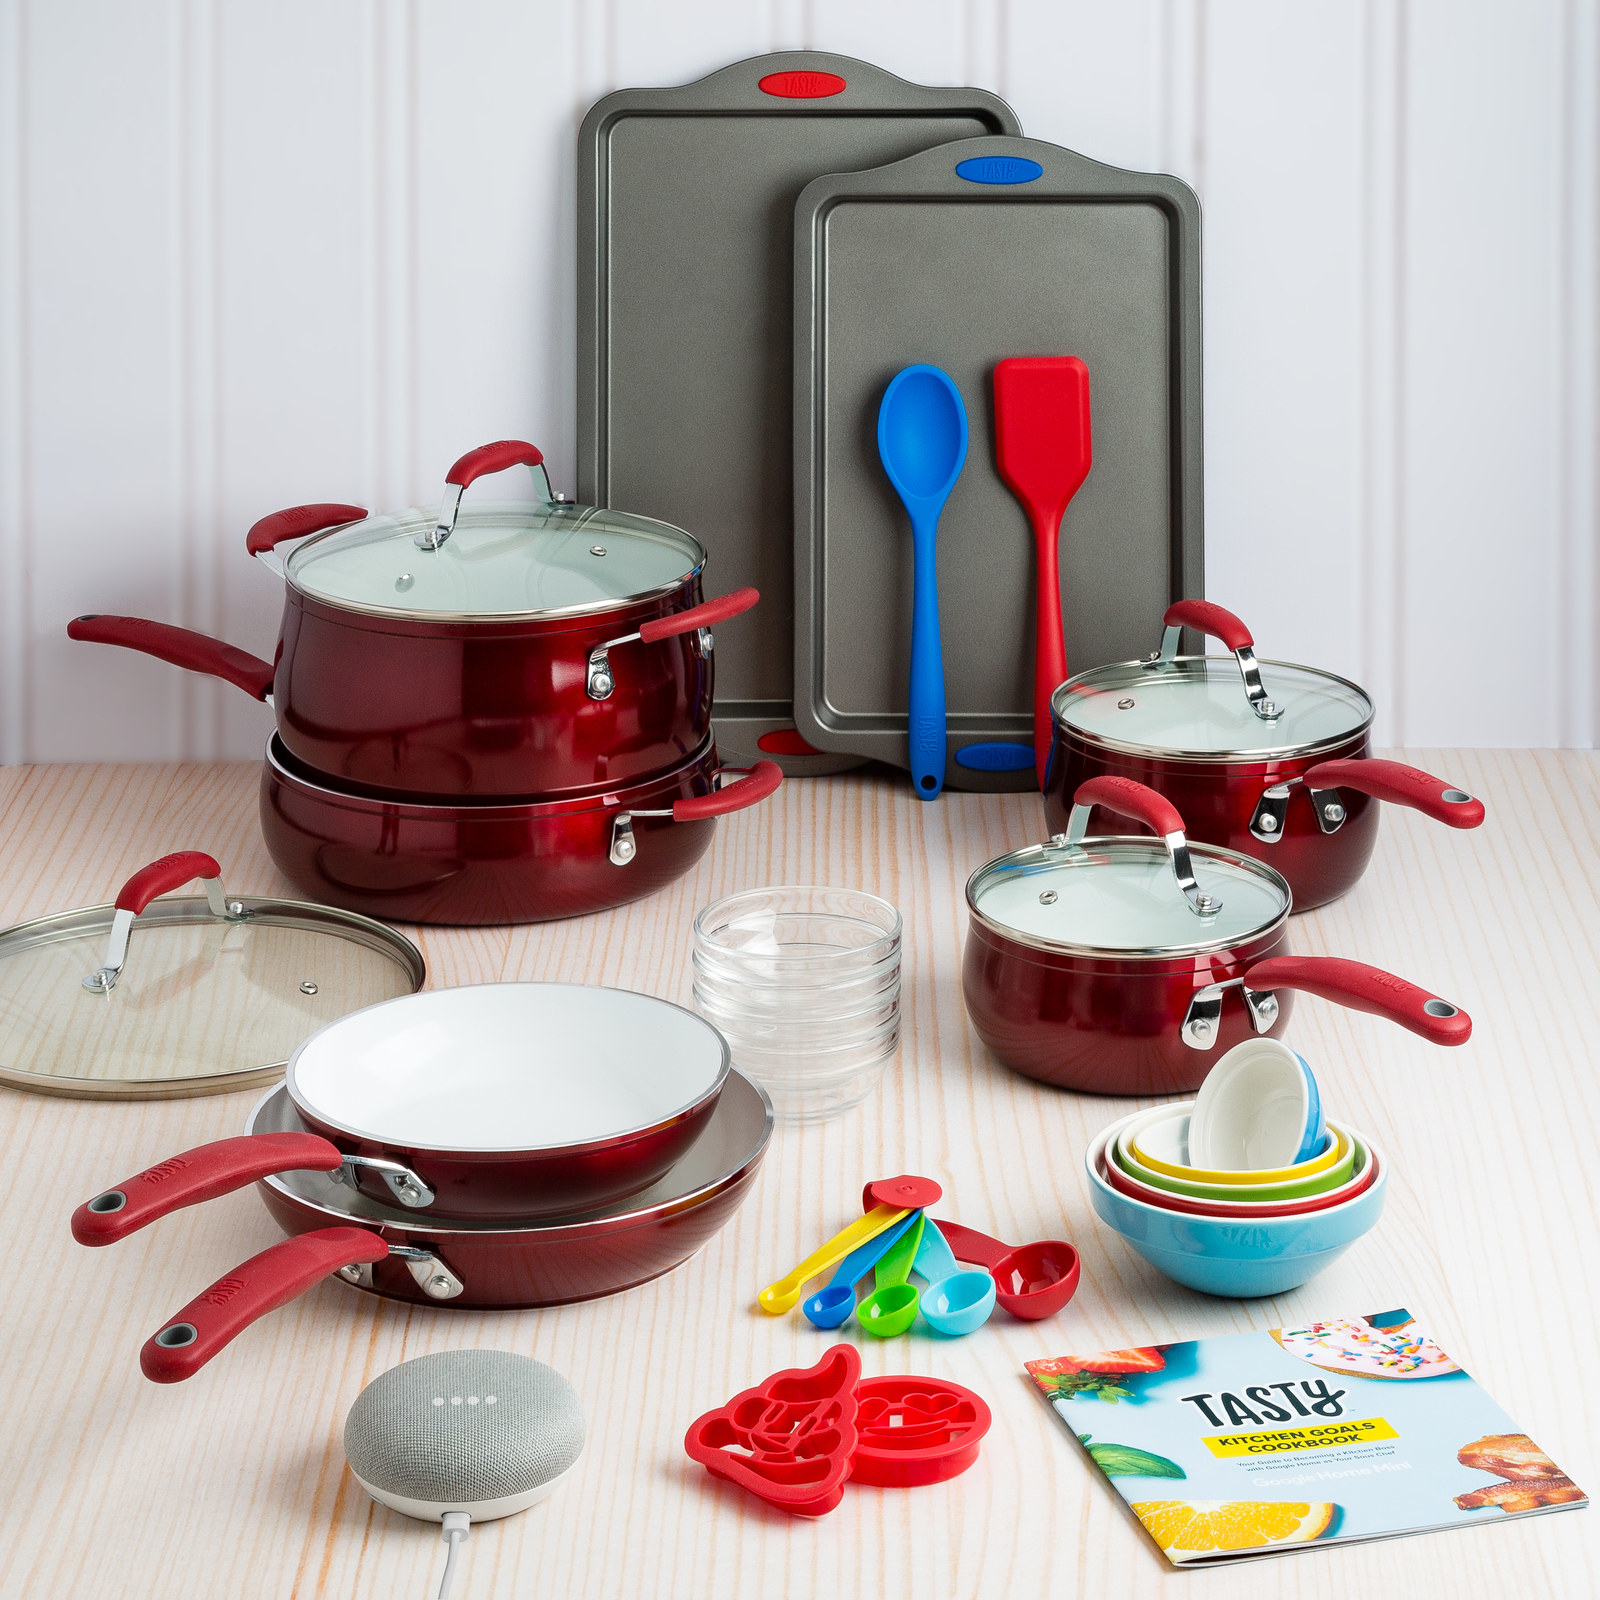 21 Must Have Kitchen Products For Your First Home